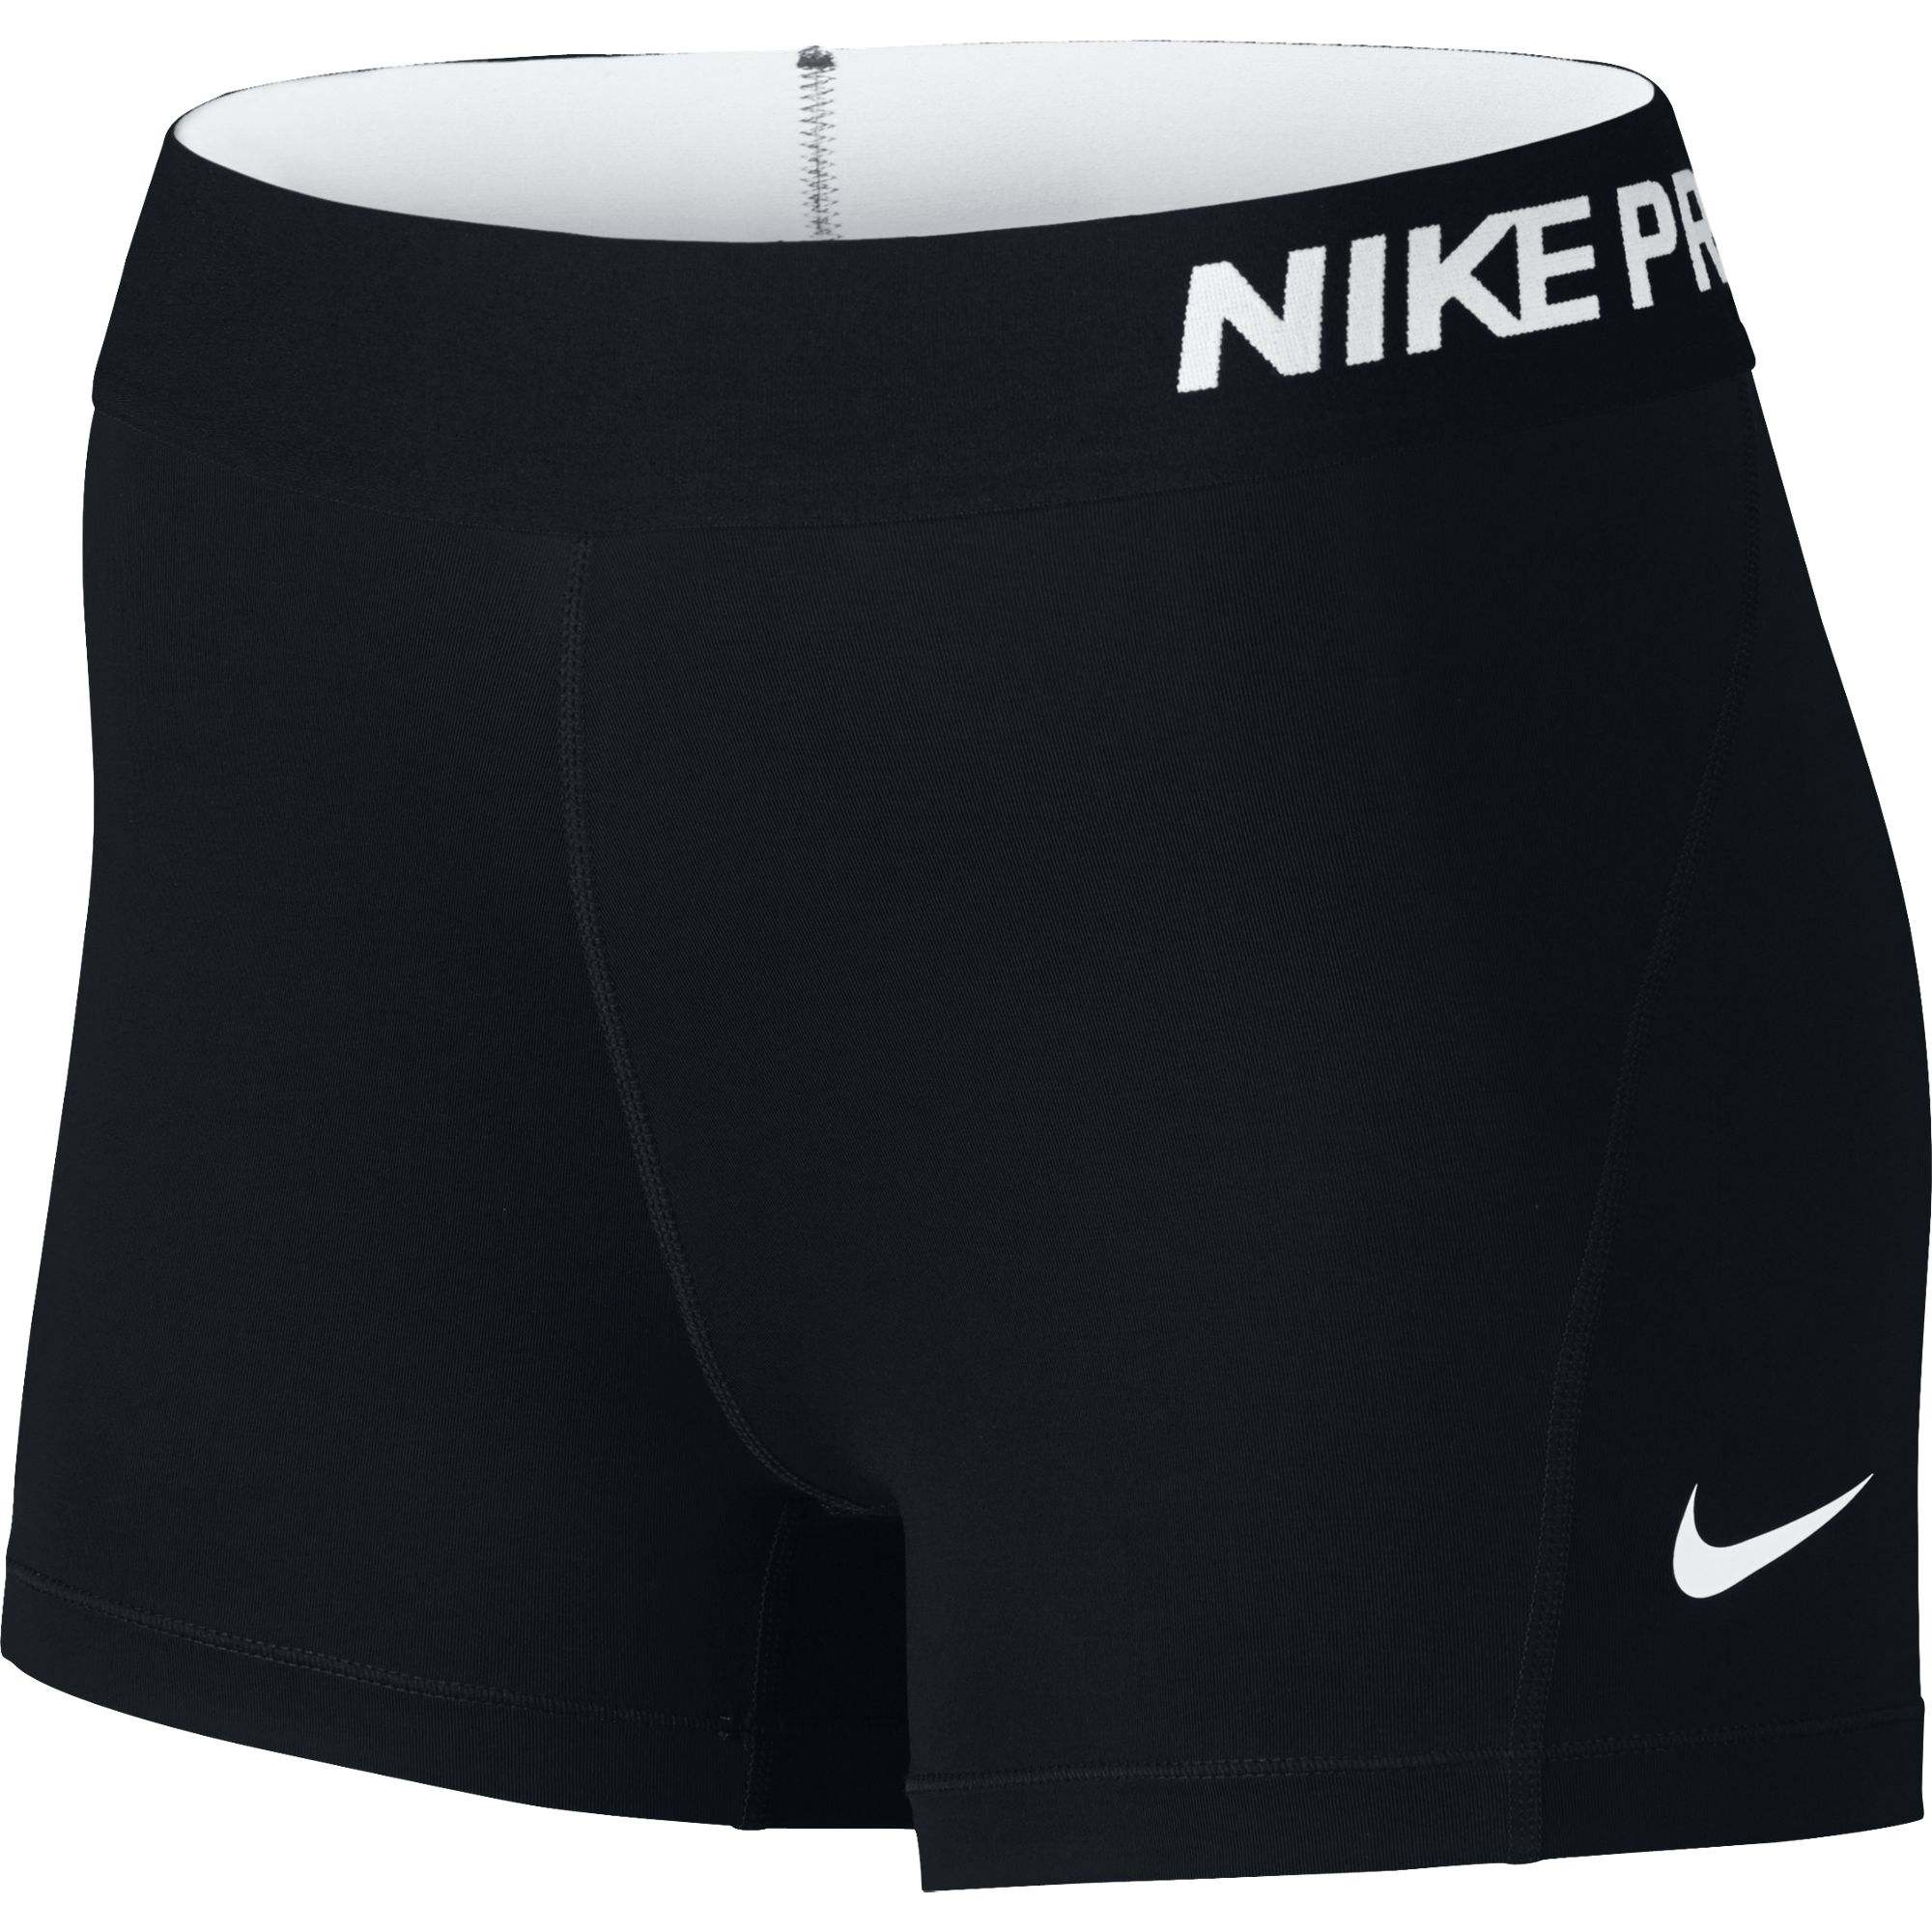 "Nike Pro 3"" Cool Compression Short 93272"